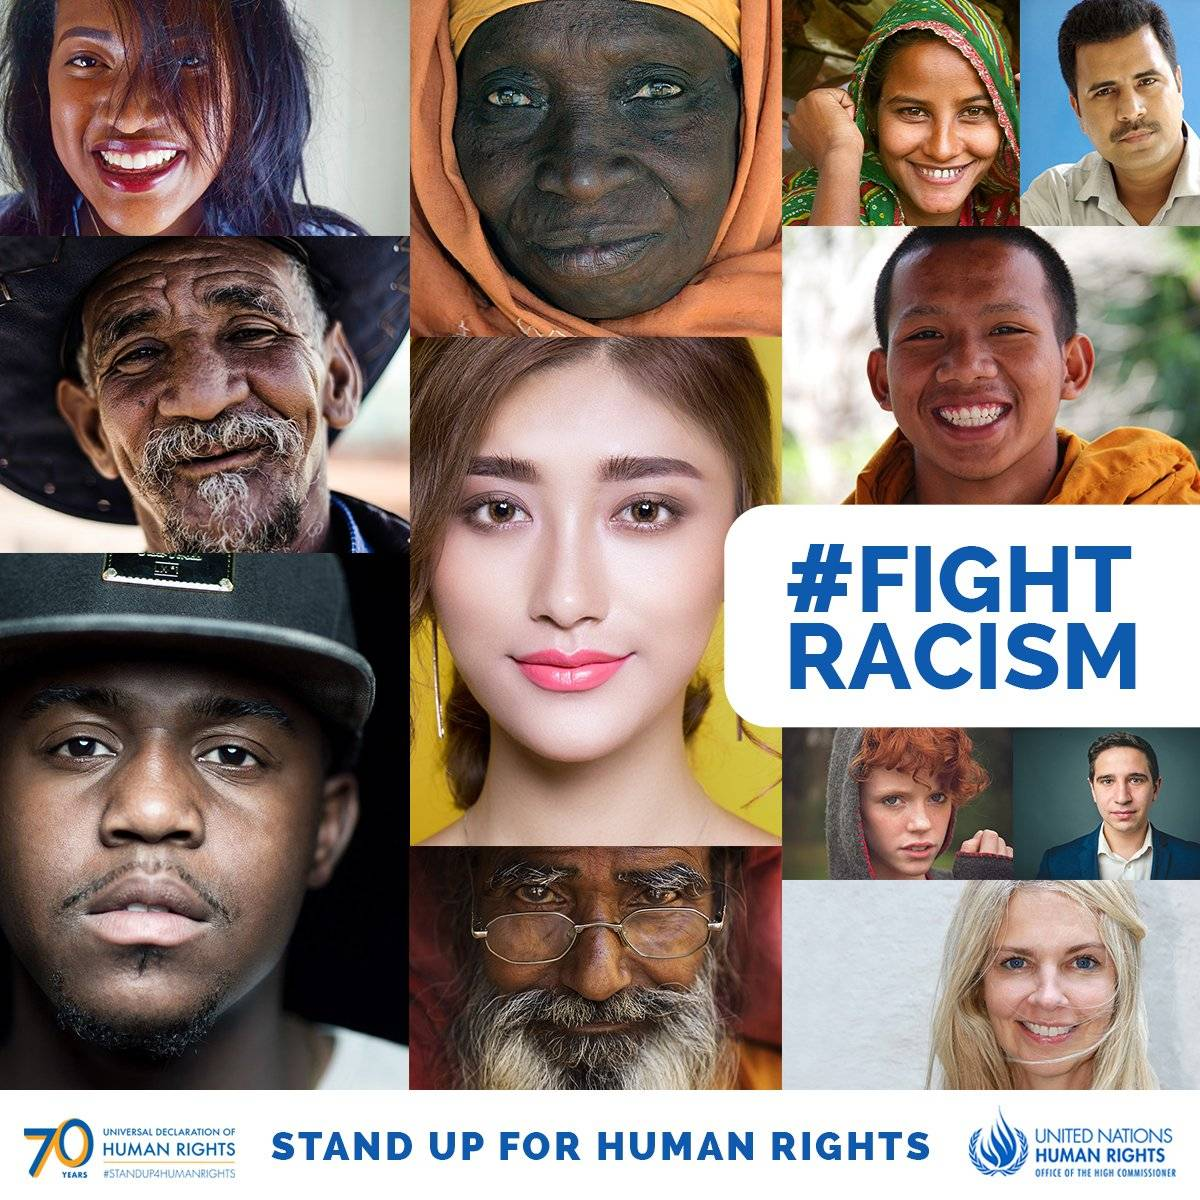 #Racismis contrary to everything we stand for. The murderous Islamophobic and terrorist attack, just hours ago, on two mosques in#NewZealandis yet another terrible reminder that racism kills. — UN Human Rights Chief@mbacheletat#HRC40.  ℹ http://ow.ly/brqd30o3H0m #FightRacism